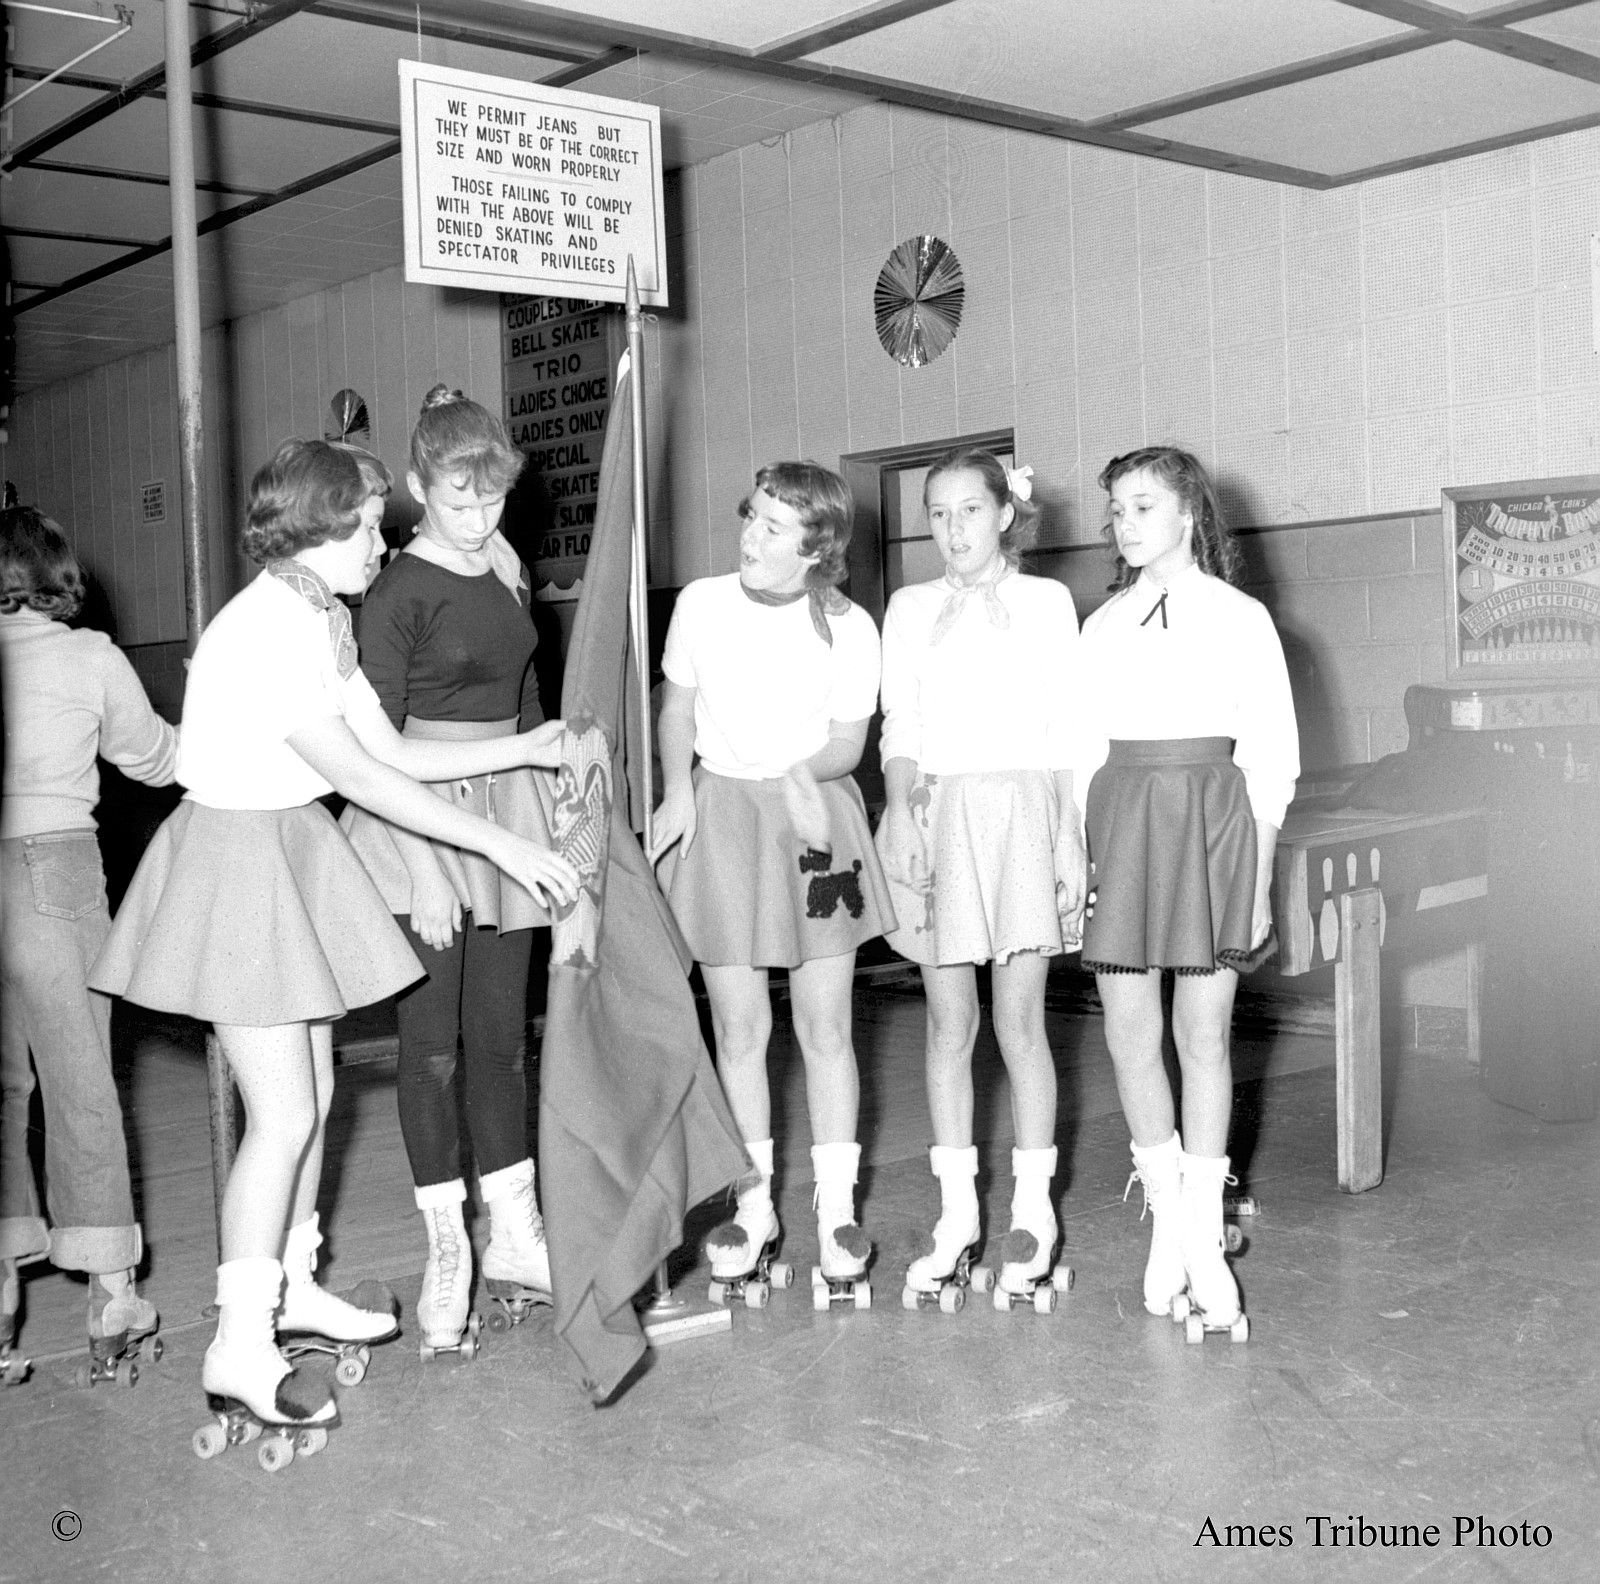 1950s roller girls...that girl on the left, are her jeans